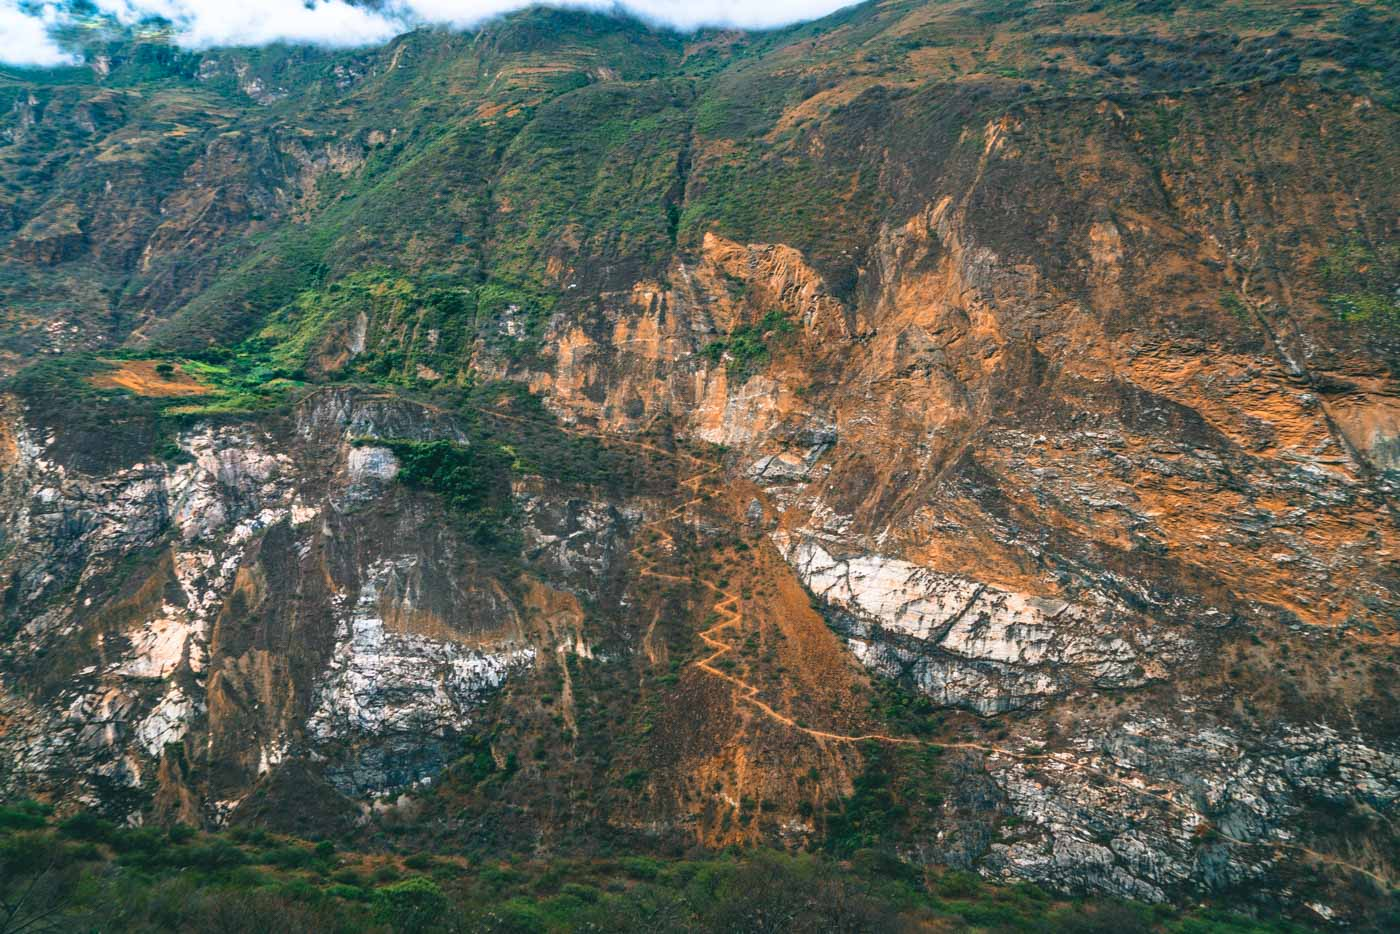 Zig Zag trail en route to Choquequirao, Cusco Region, Peru